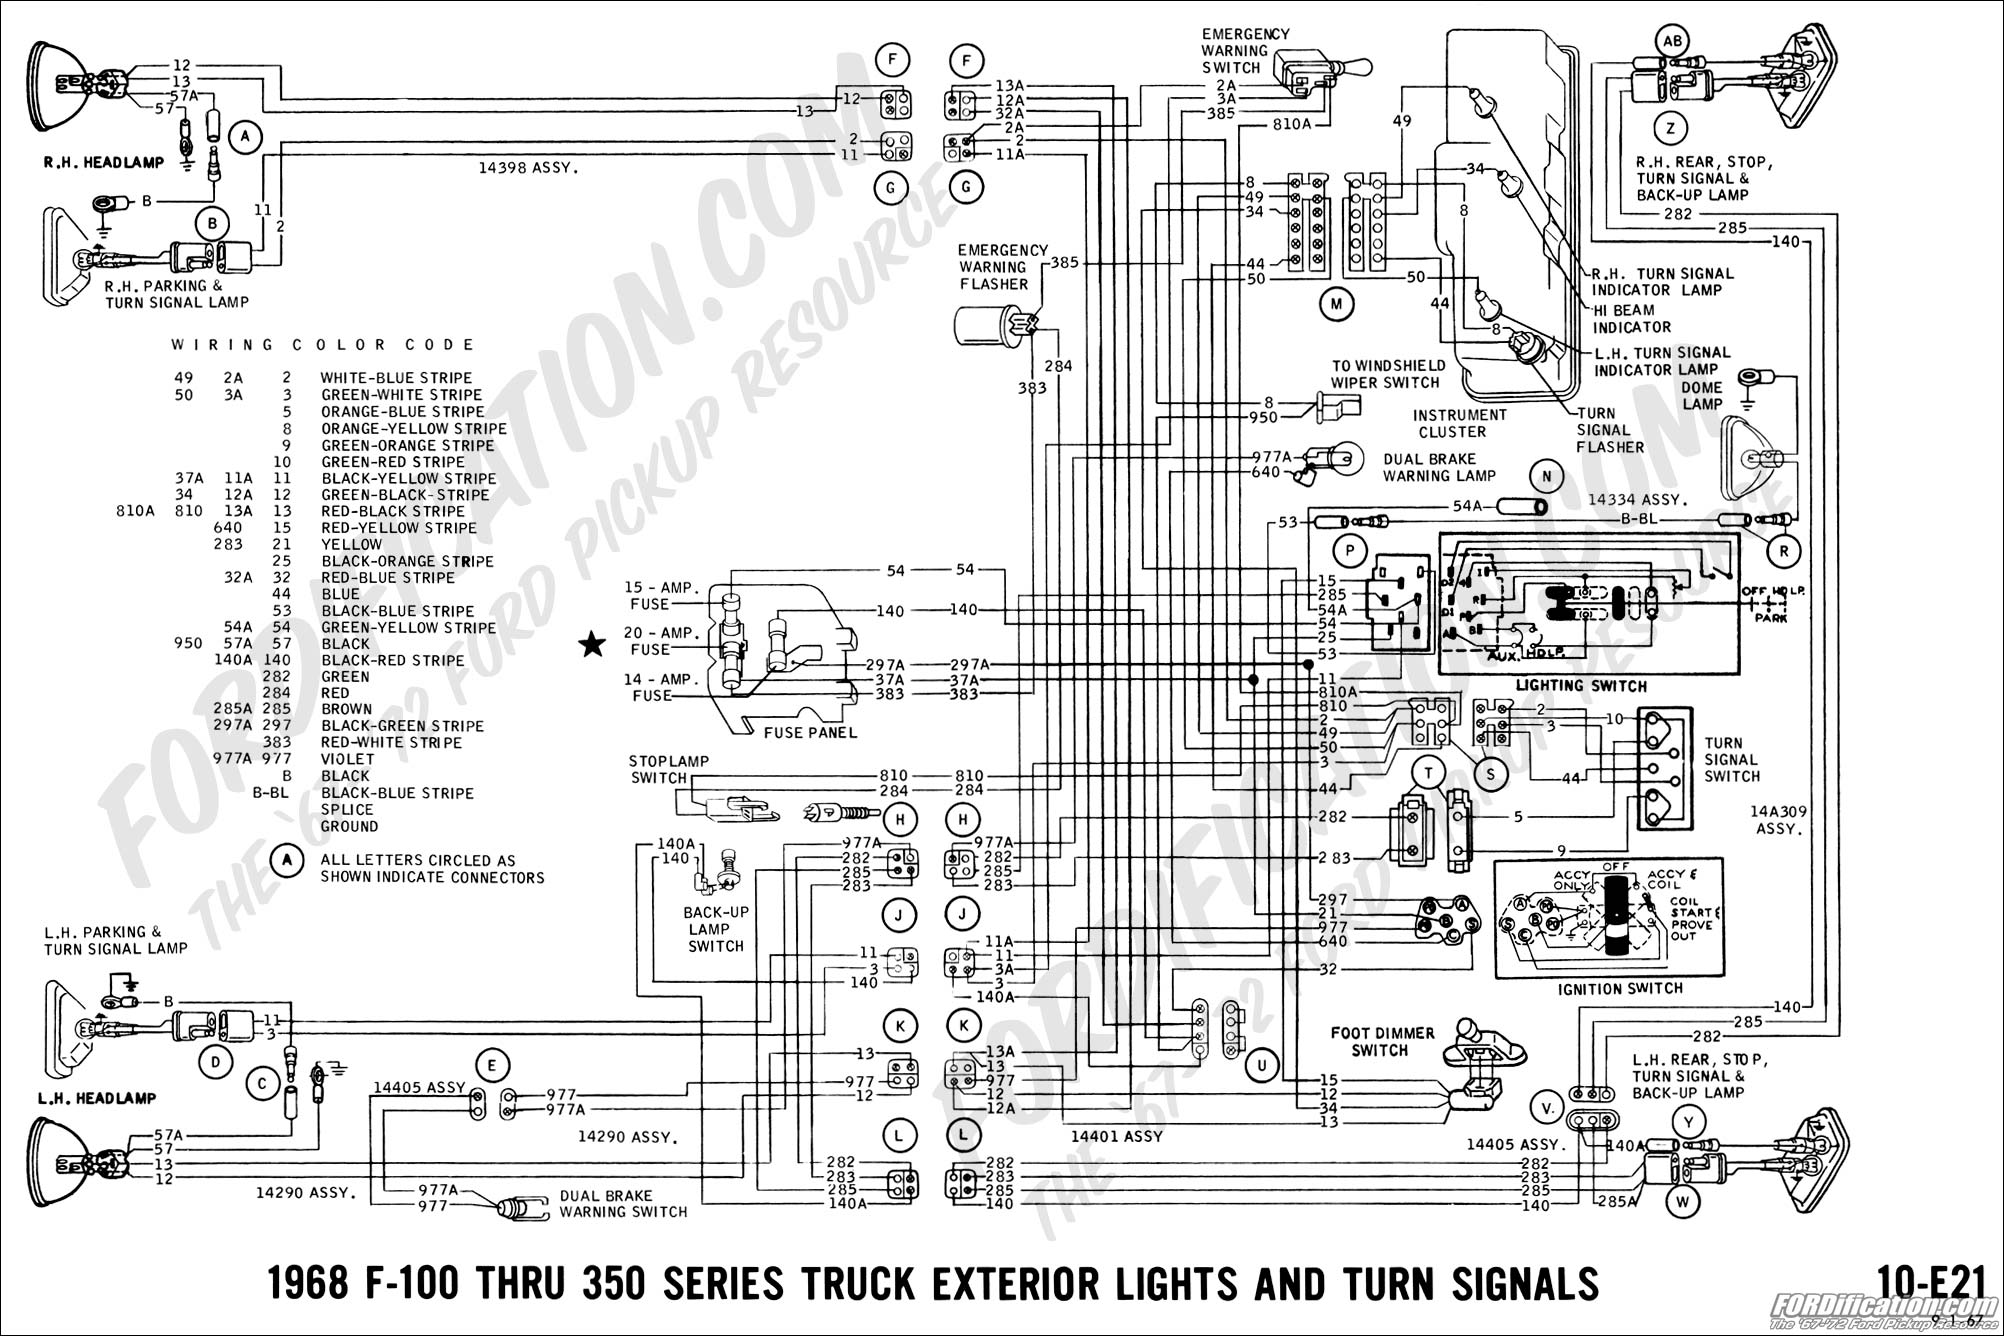 Amazing Ford Truck Technical Drawings And Schematics Section H Wiring Letkol Mohammedshrine Wiring Cloud Letkolmohammedshrineorg